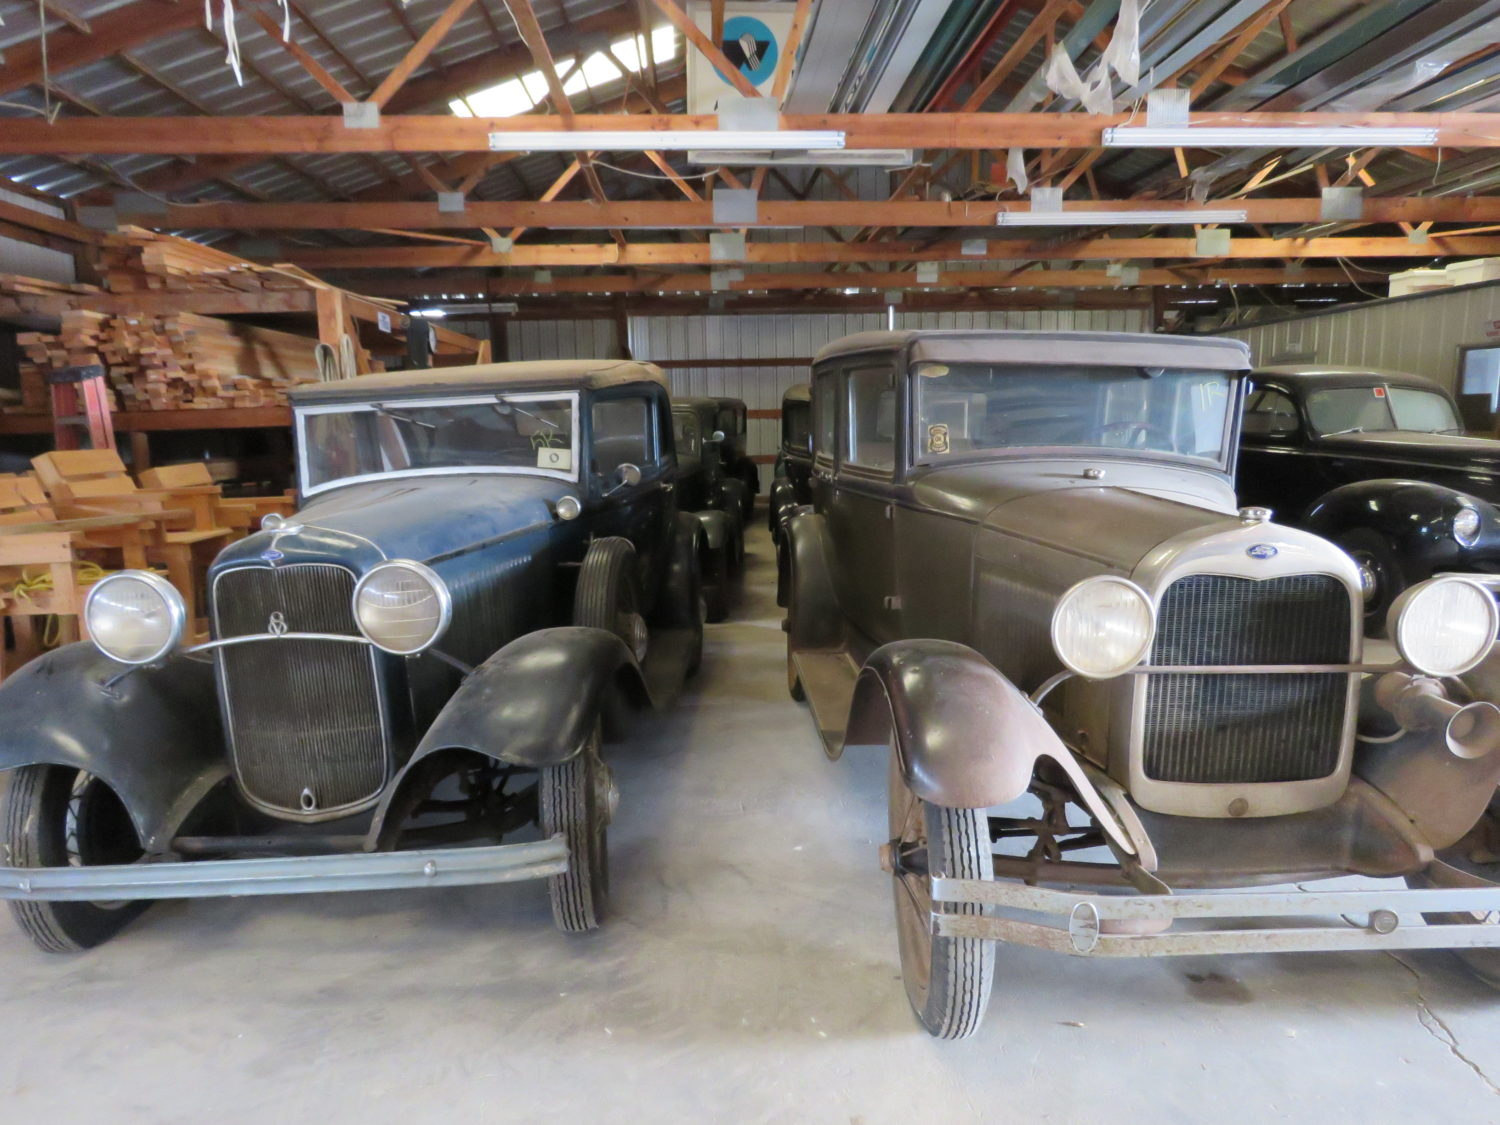 The Amazing Bob Regehr Collection! 140 plus Vehicles! 20-1932 Fords, Corvettes, Camaros & More!  - image 5